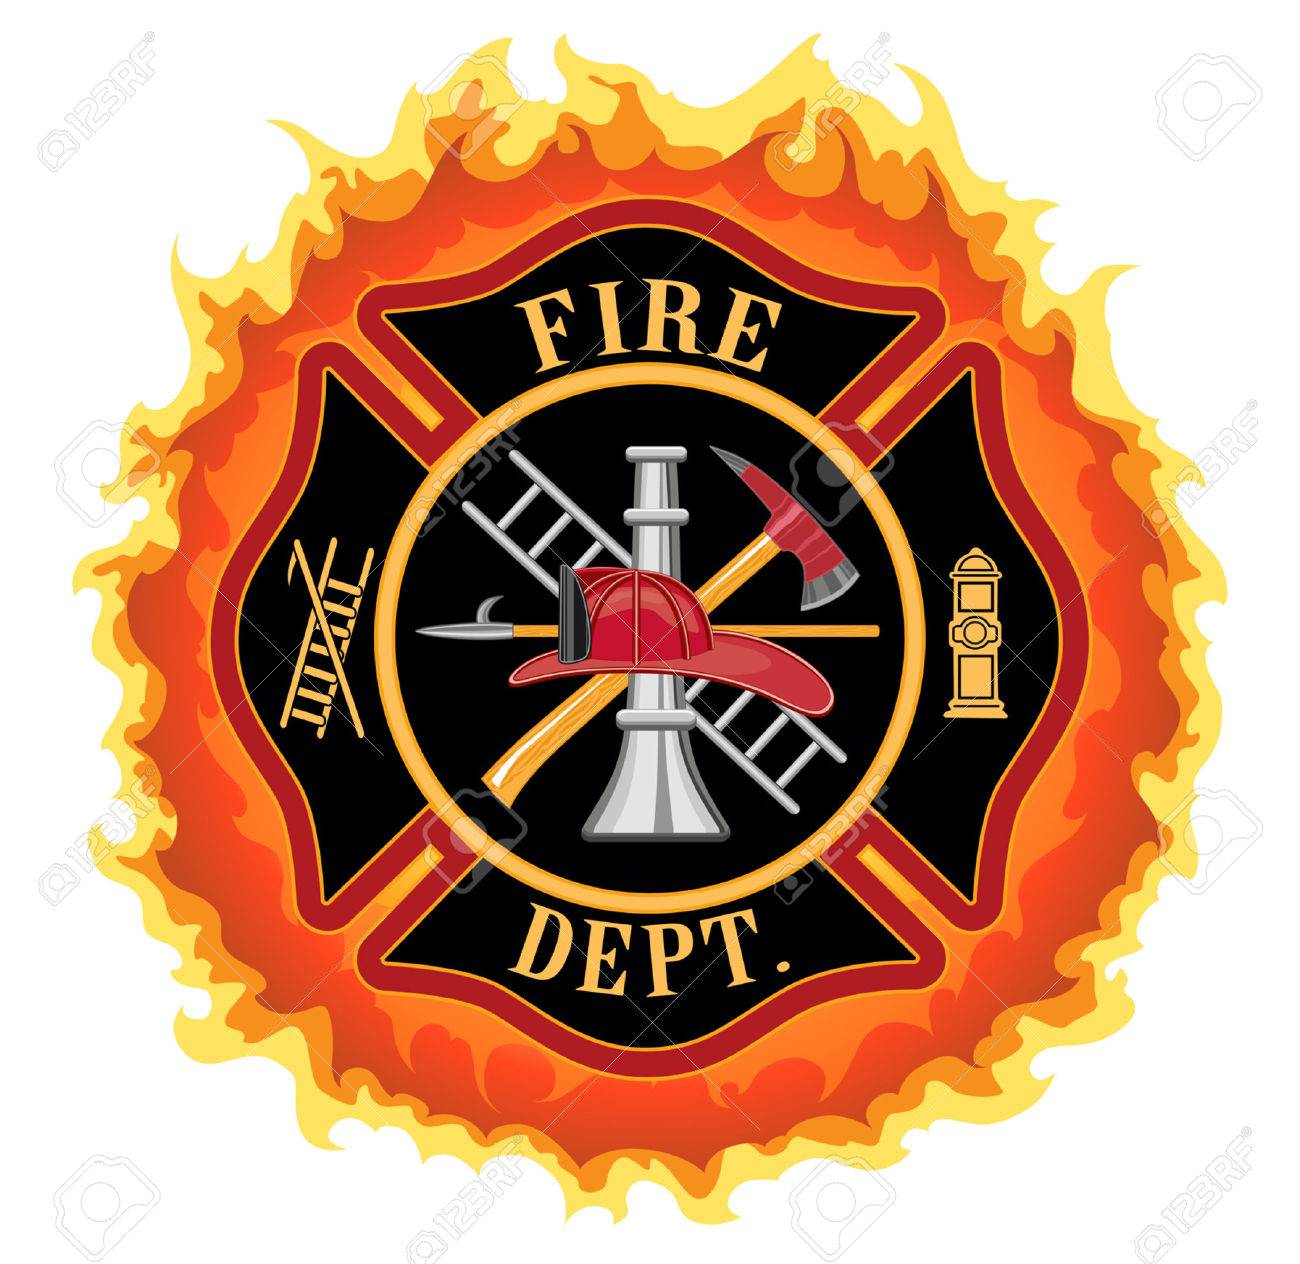 Firefighter cross with flames is an illustration of a fire firefighter cross with flames is an illustration of a fire department or firefighter maltese cross symbol biocorpaavc